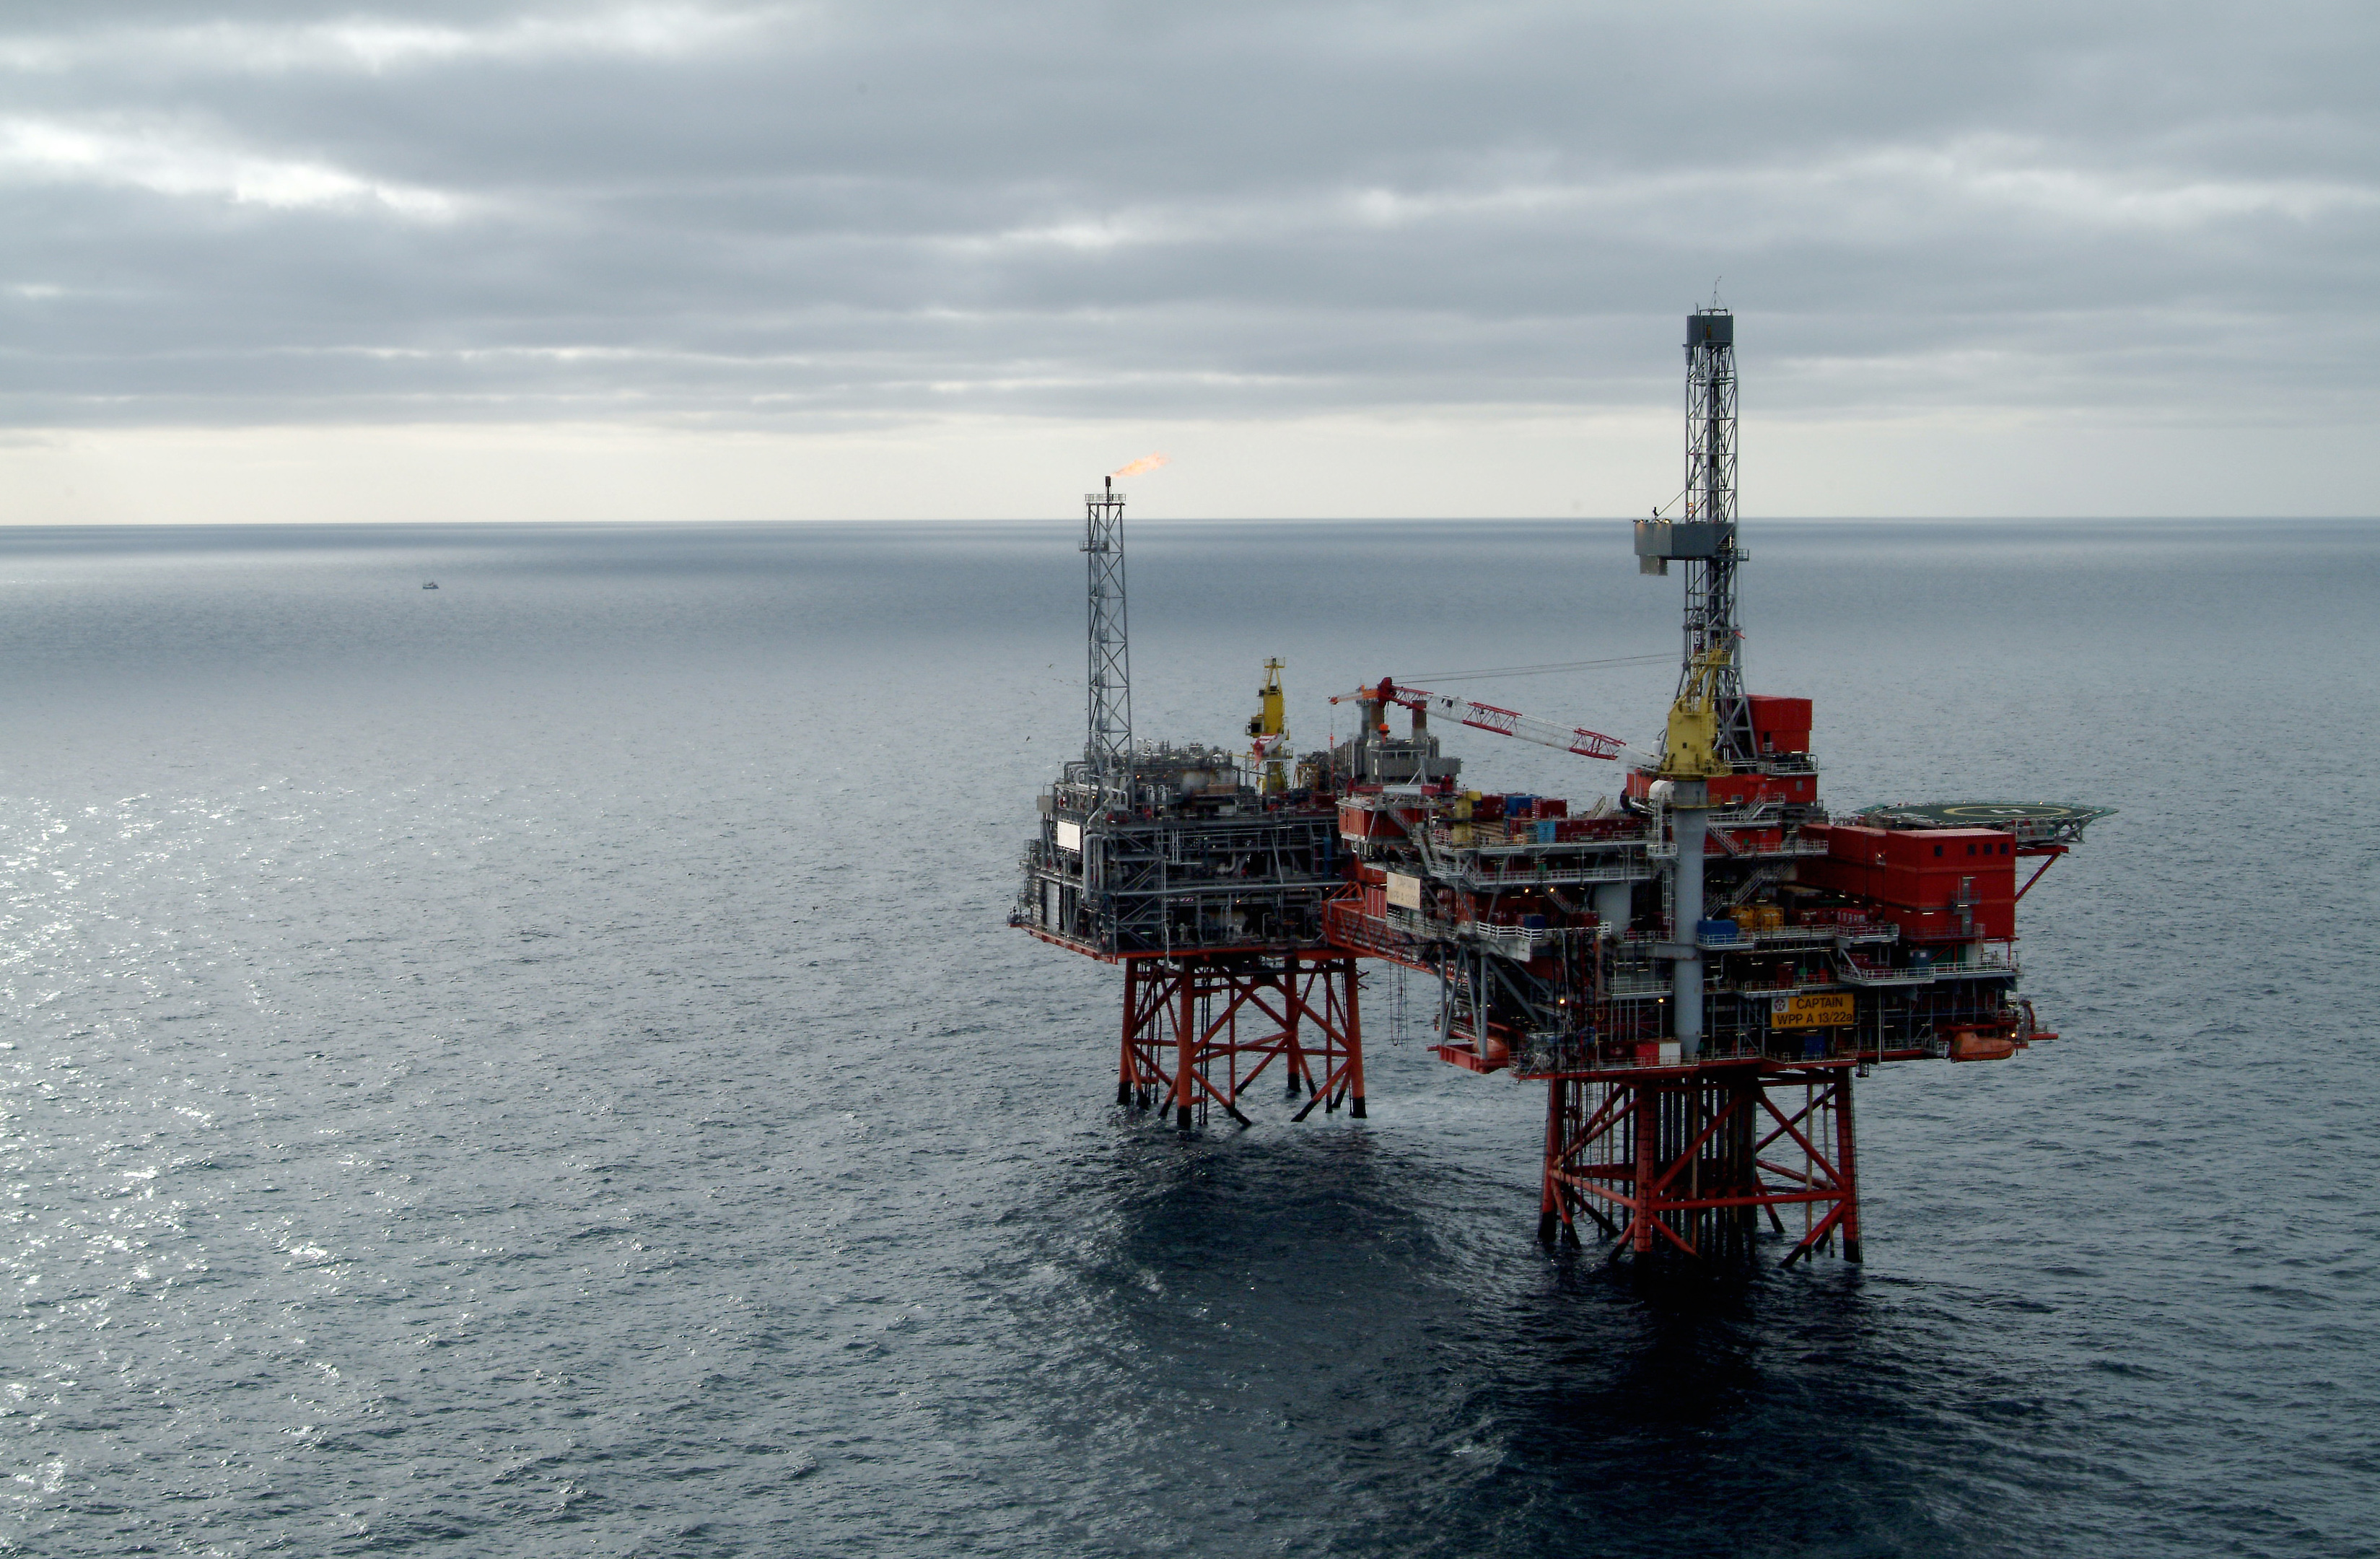 Chevron's North Sea Captain platforms